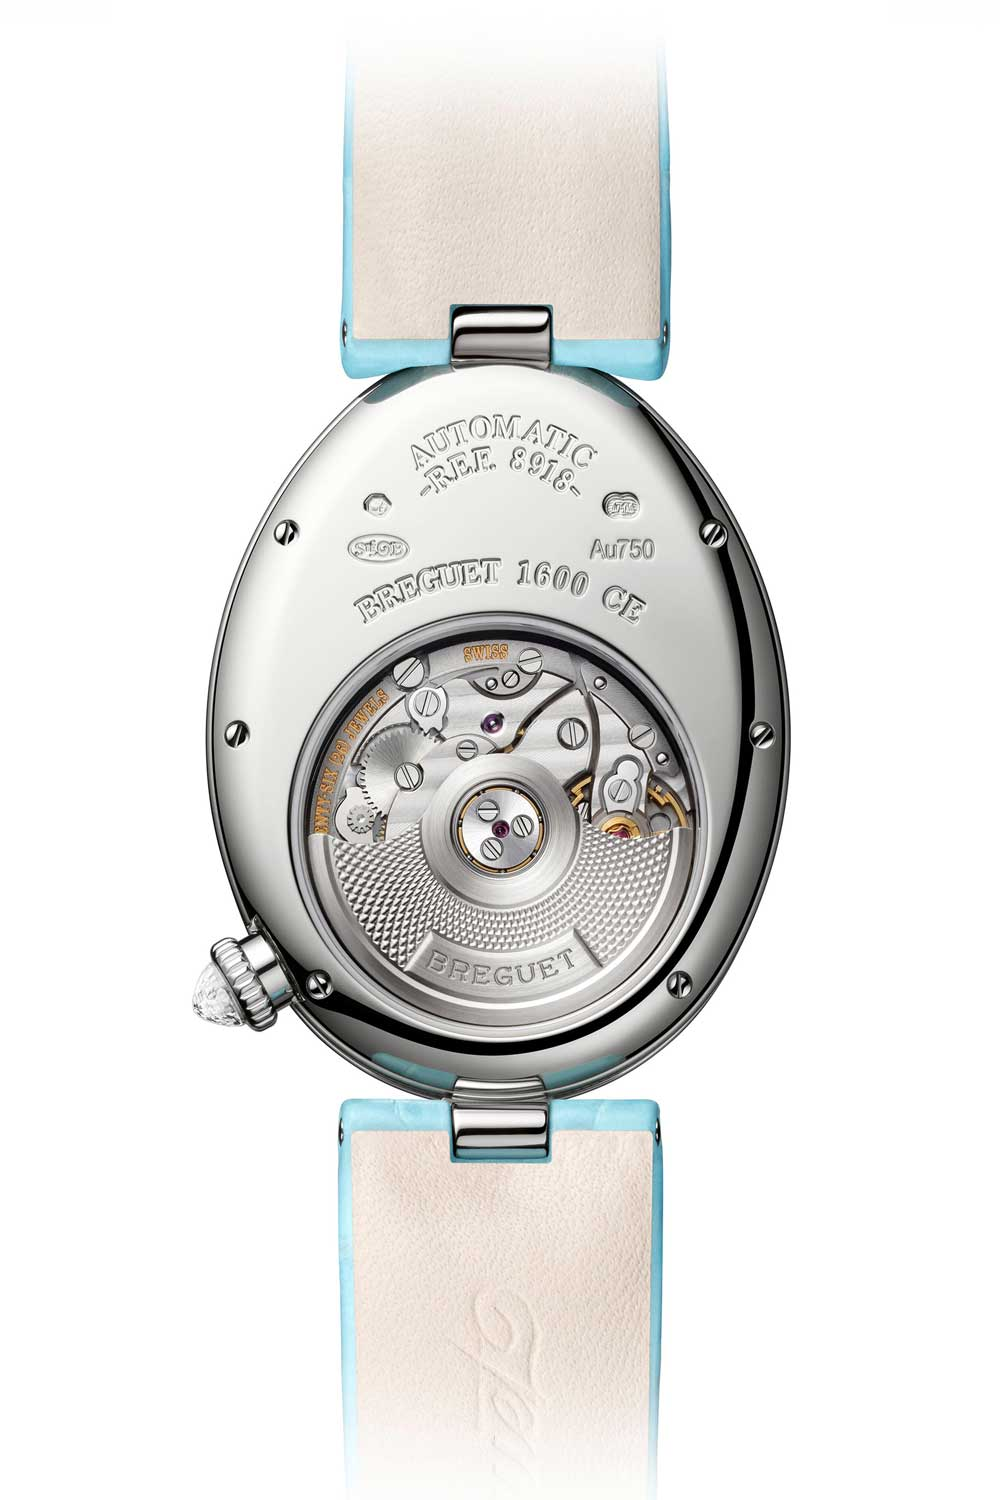 Breguet Reine de Naples for 2020